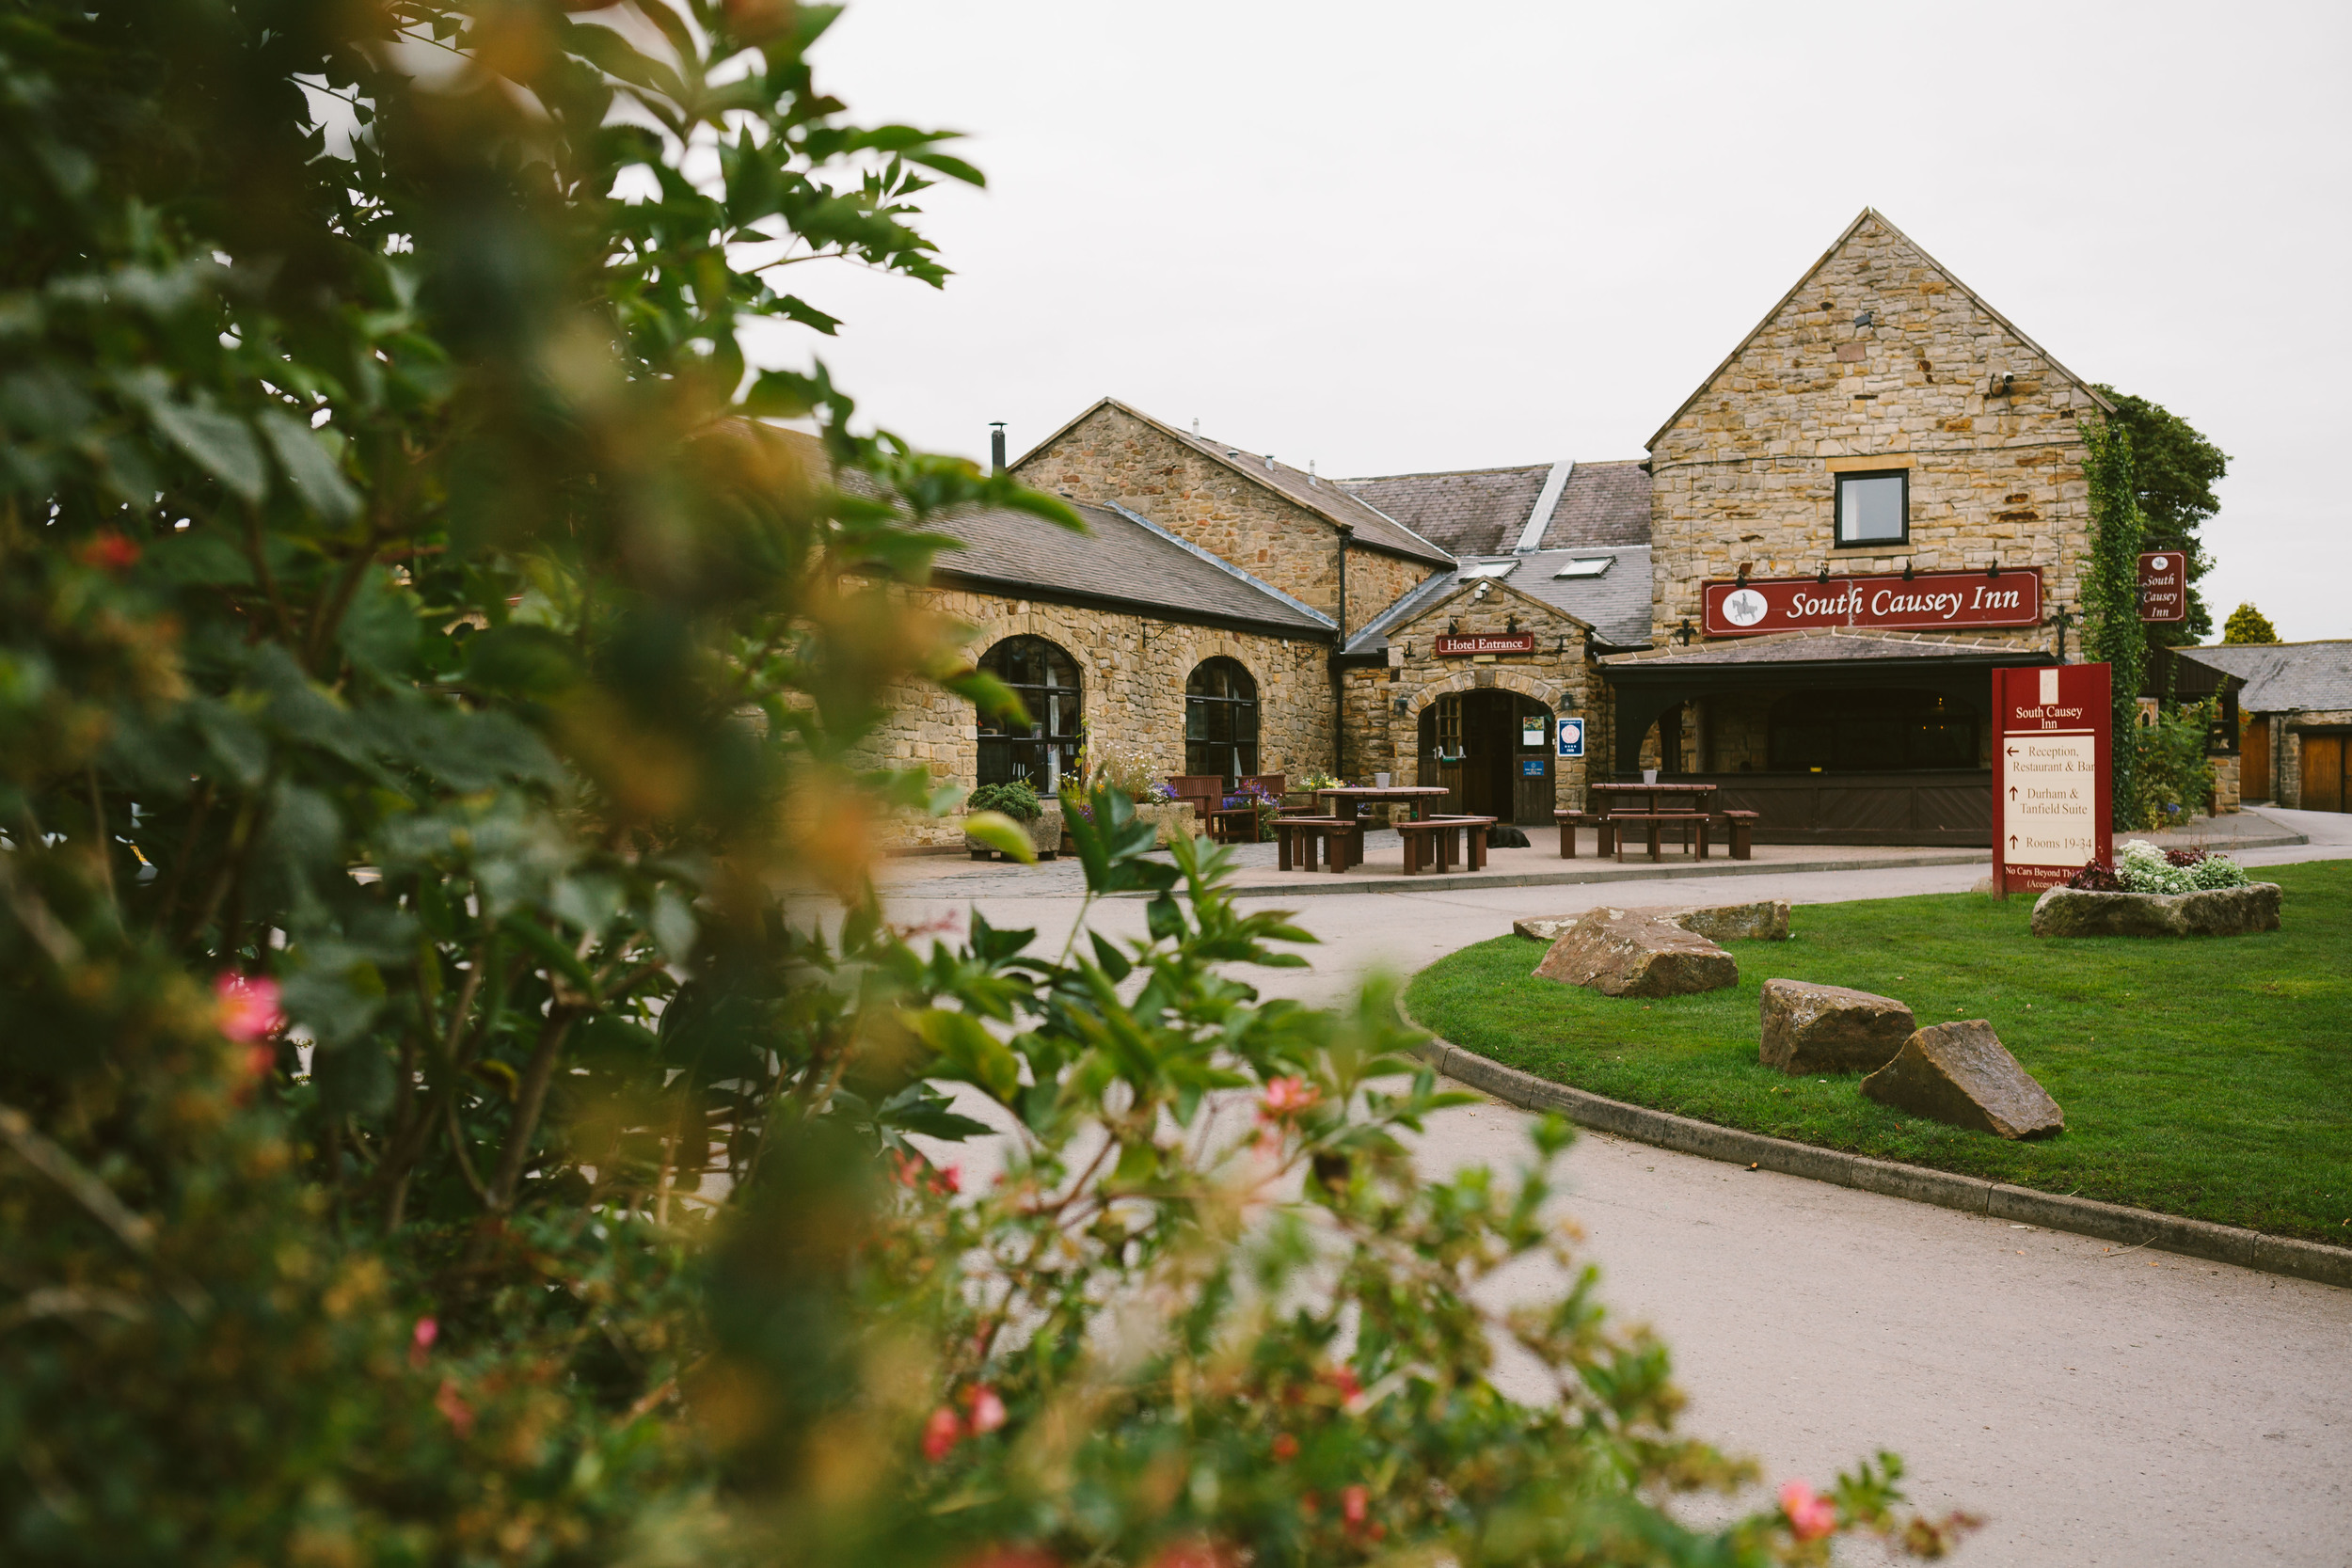 Durham Wedding Venue South Causey Inn